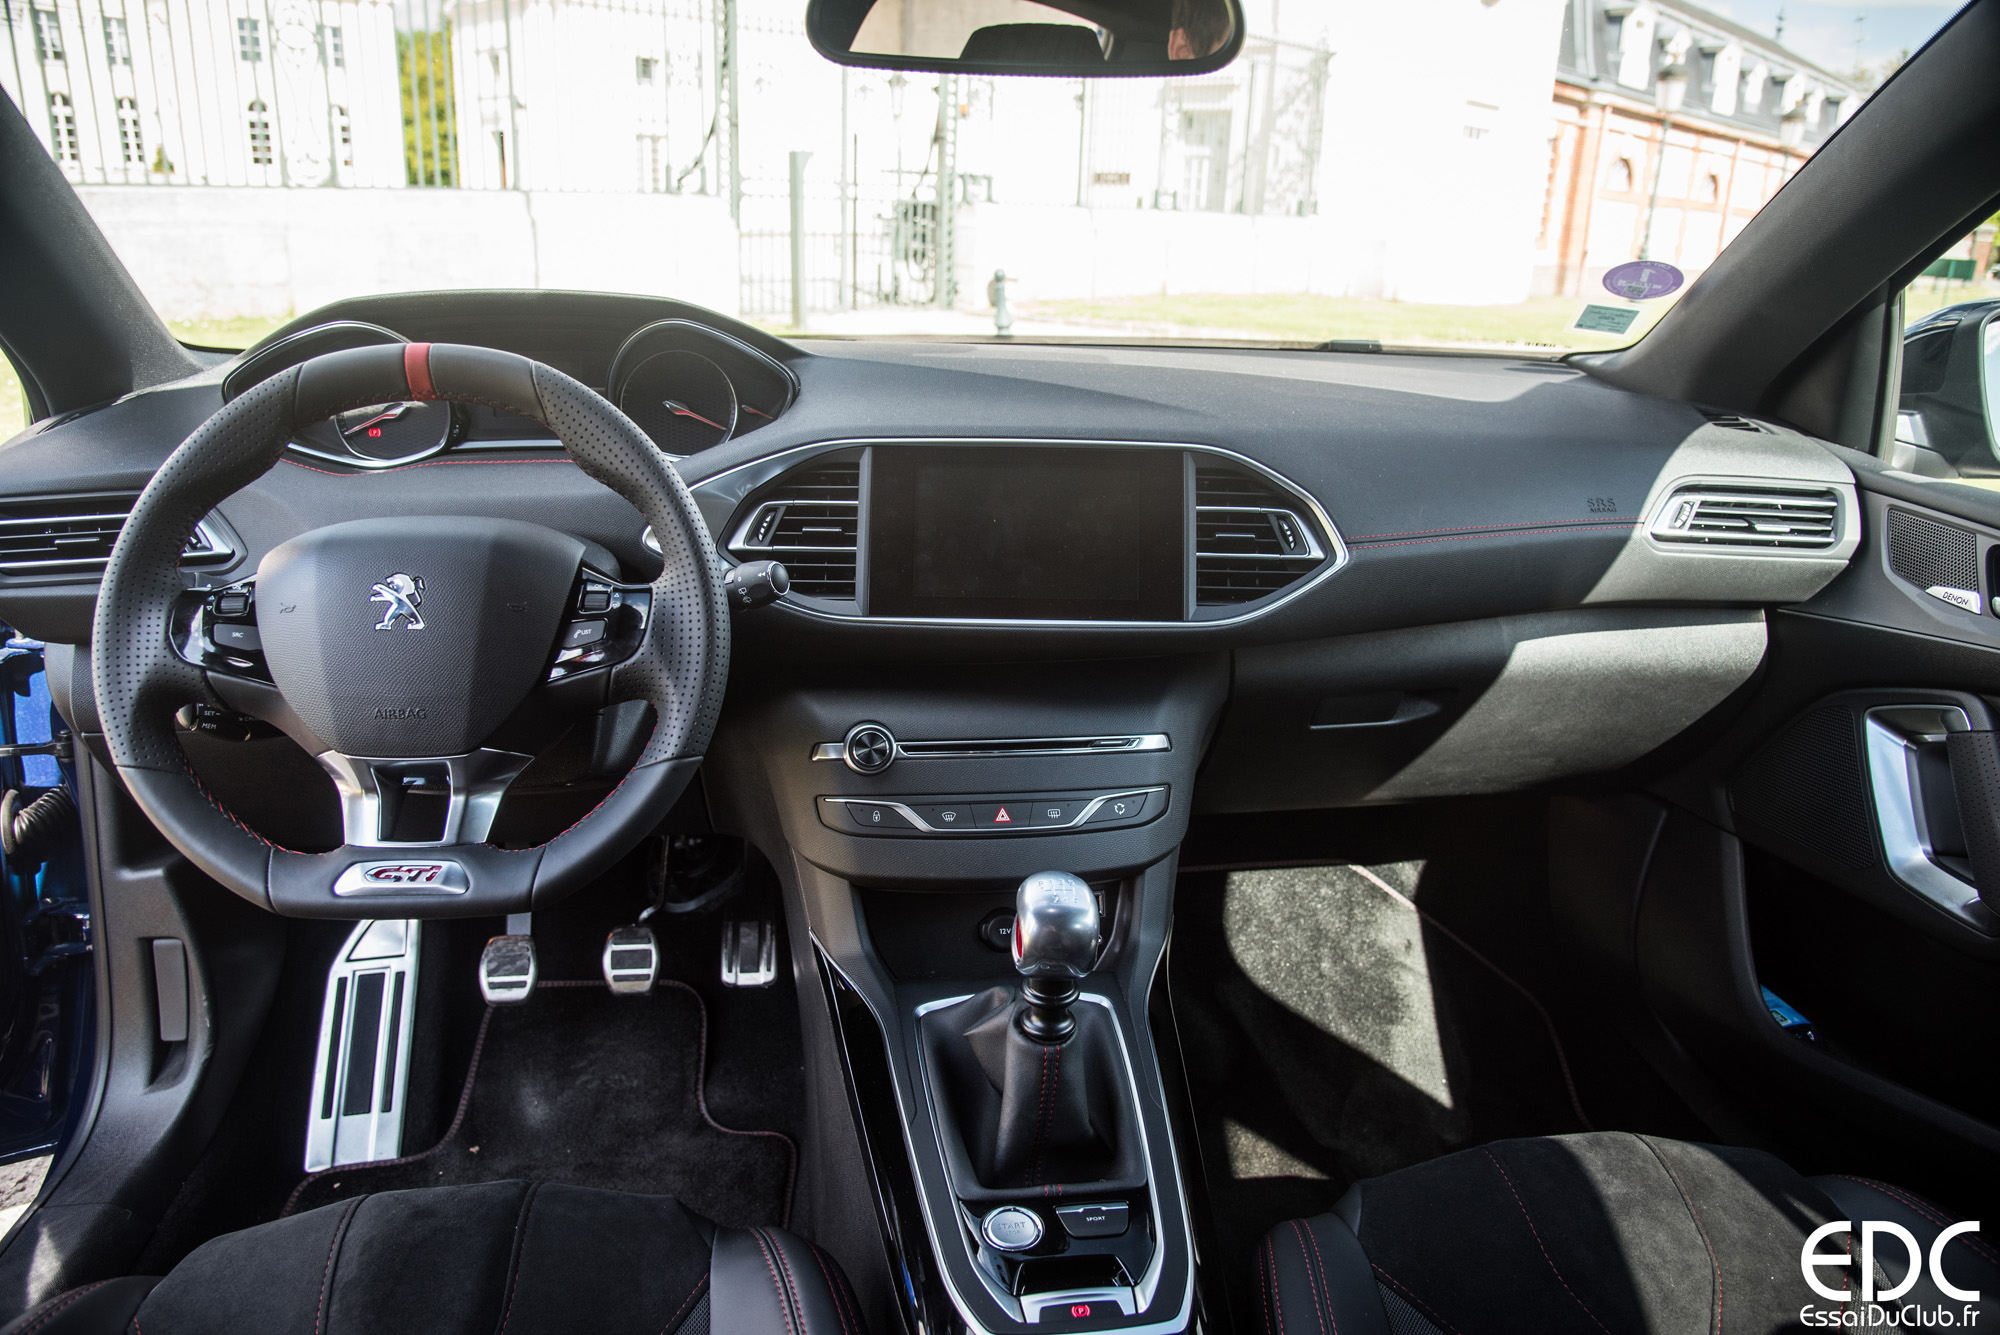 photo 308 cc interieur of interieur peugeot 308. Black Bedroom Furniture Sets. Home Design Ideas